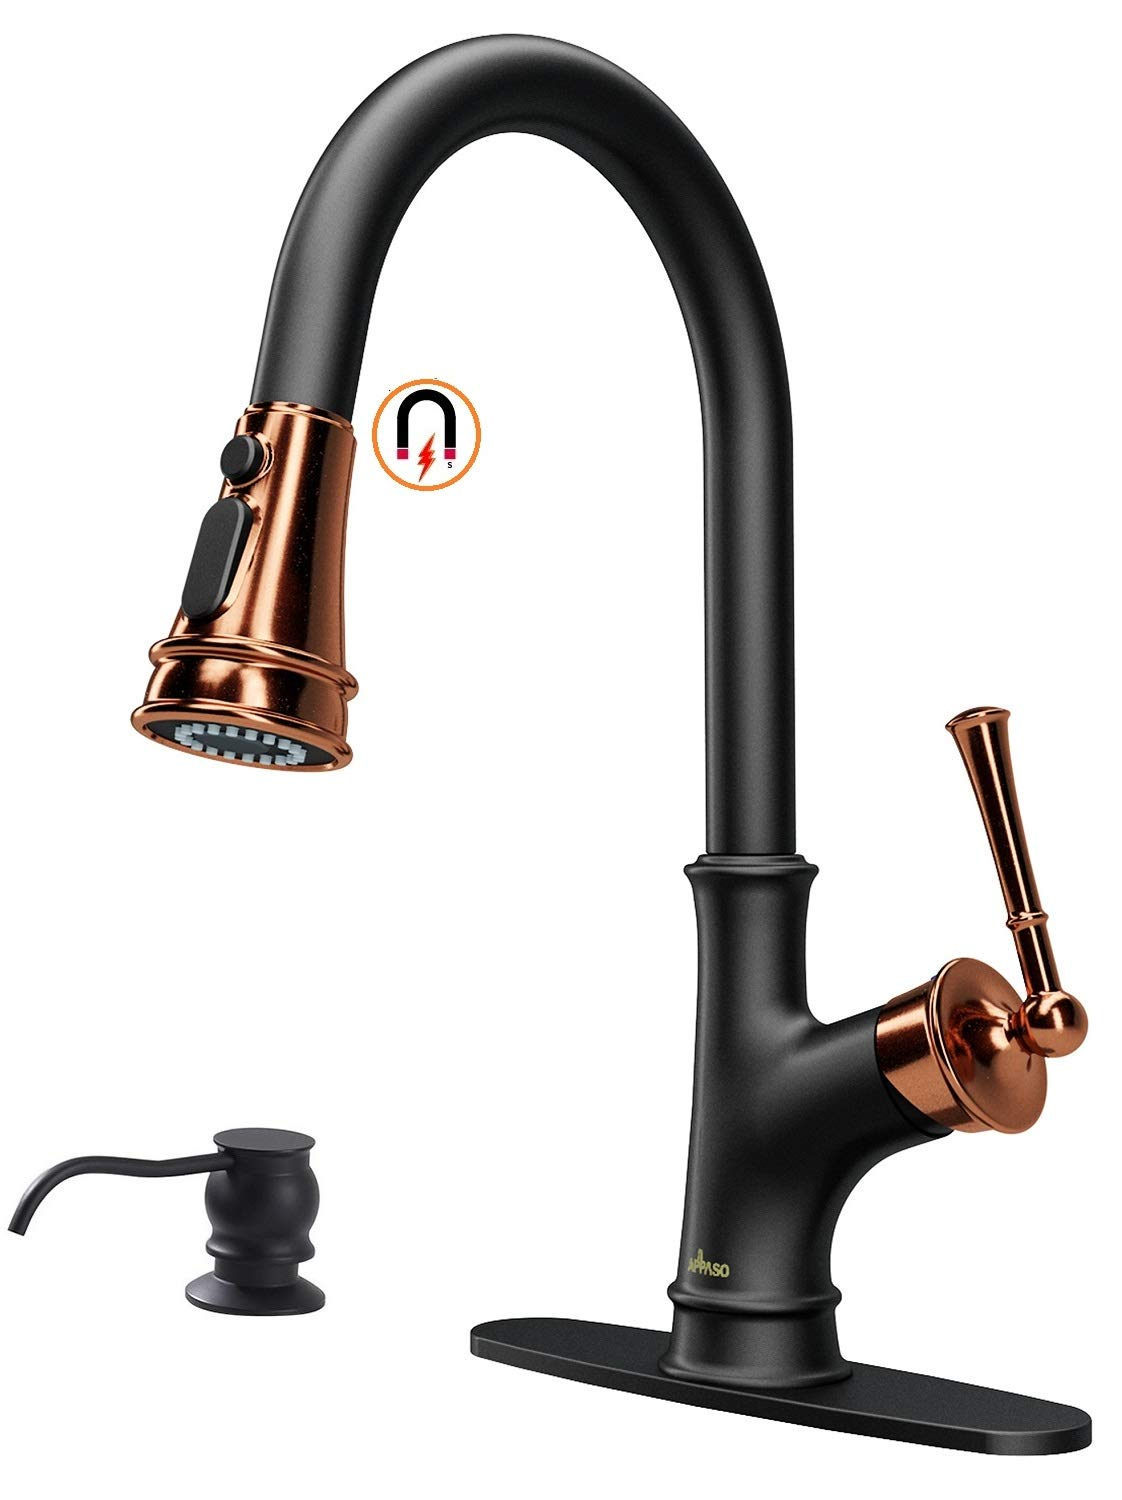 SUS Kitchen Sink Faucet Pull Down//Out Sprayer Head Mixer Taps and soap dispenser